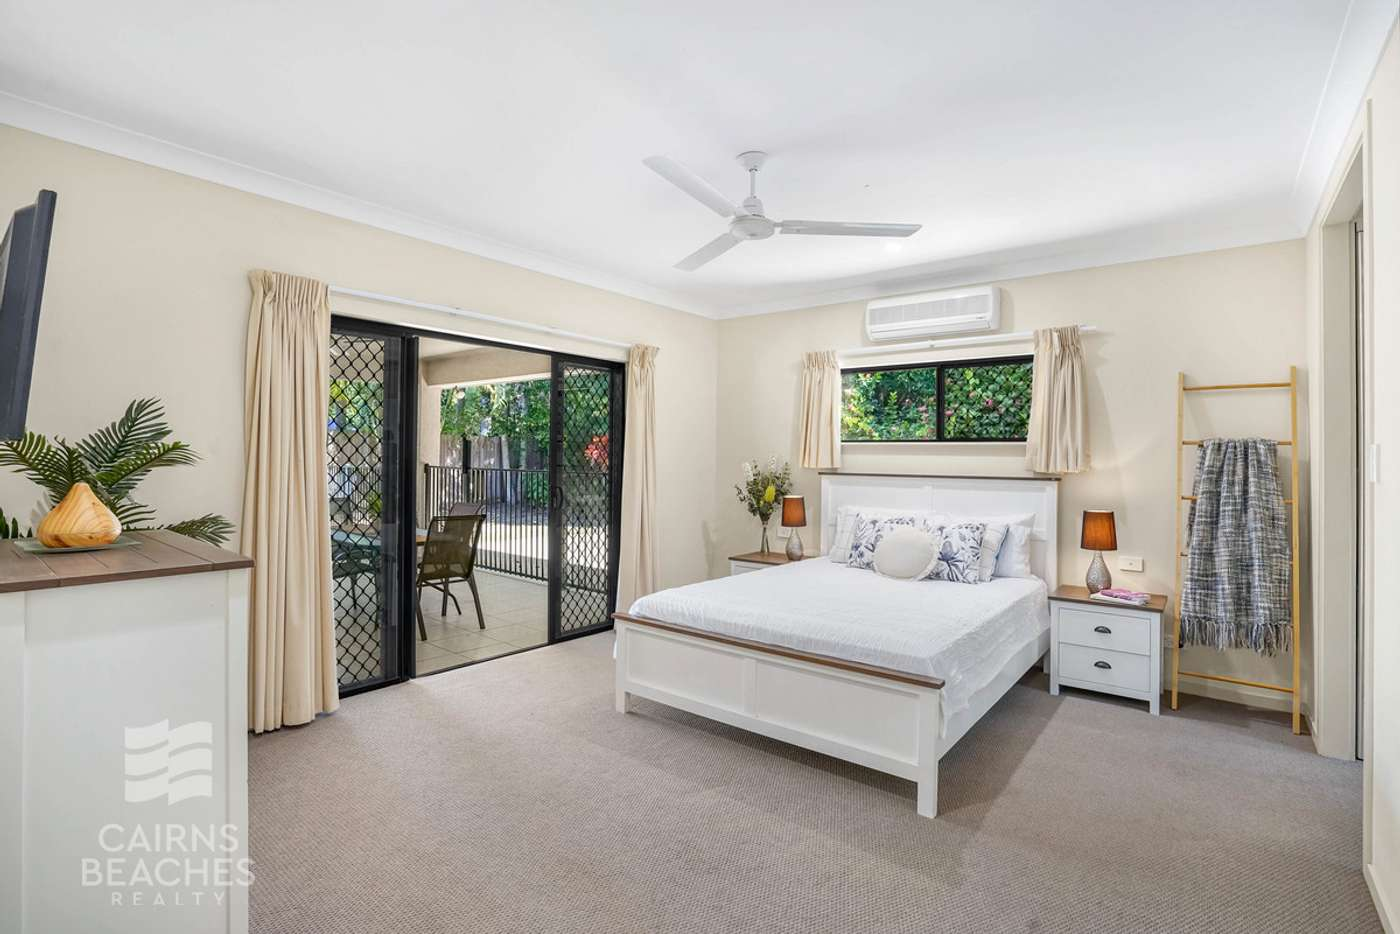 Sixth view of Homely house listing, 29 Castor Street, Clifton Beach QLD 4879